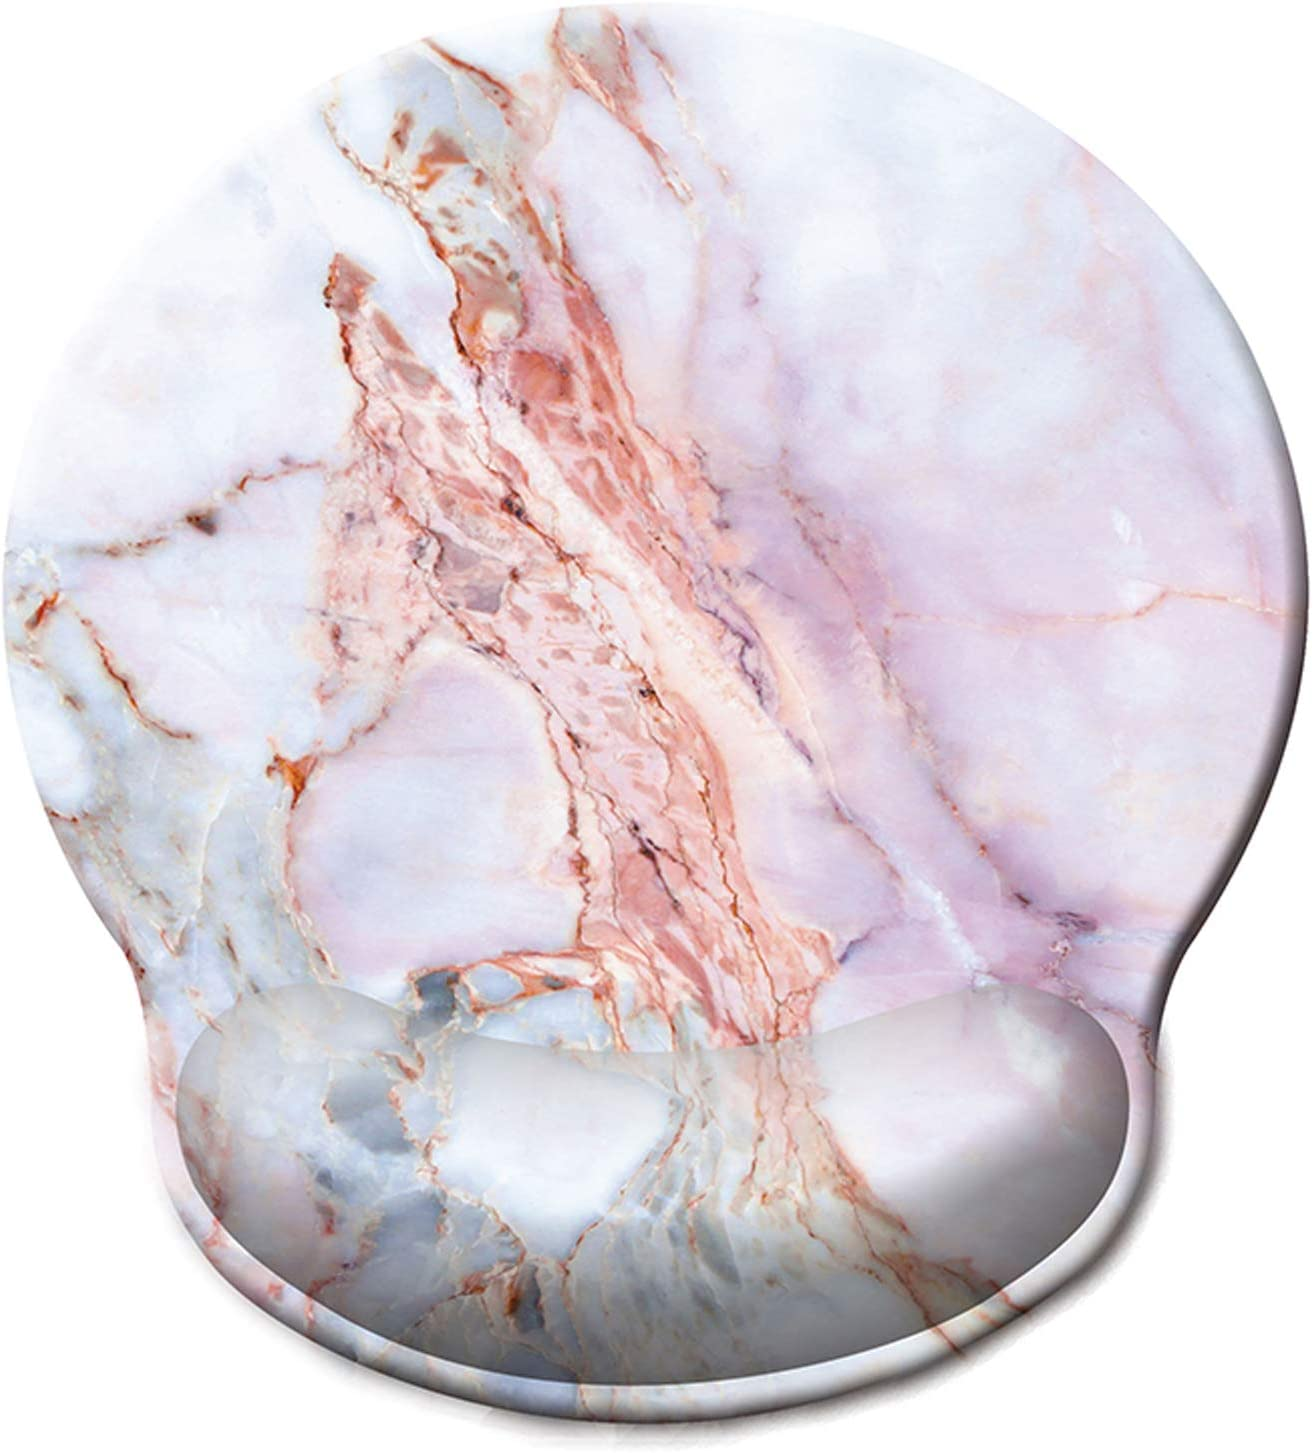 ITNRSIIET [30% Larger] Mouse Pad, Ergonomic Mouse Pad with Gel Wrist Rest Support, Gaming Mouse Pad with Lycra Cloth, Non-Slip PU Base for Computer Laptop Home Office, Pink Marble